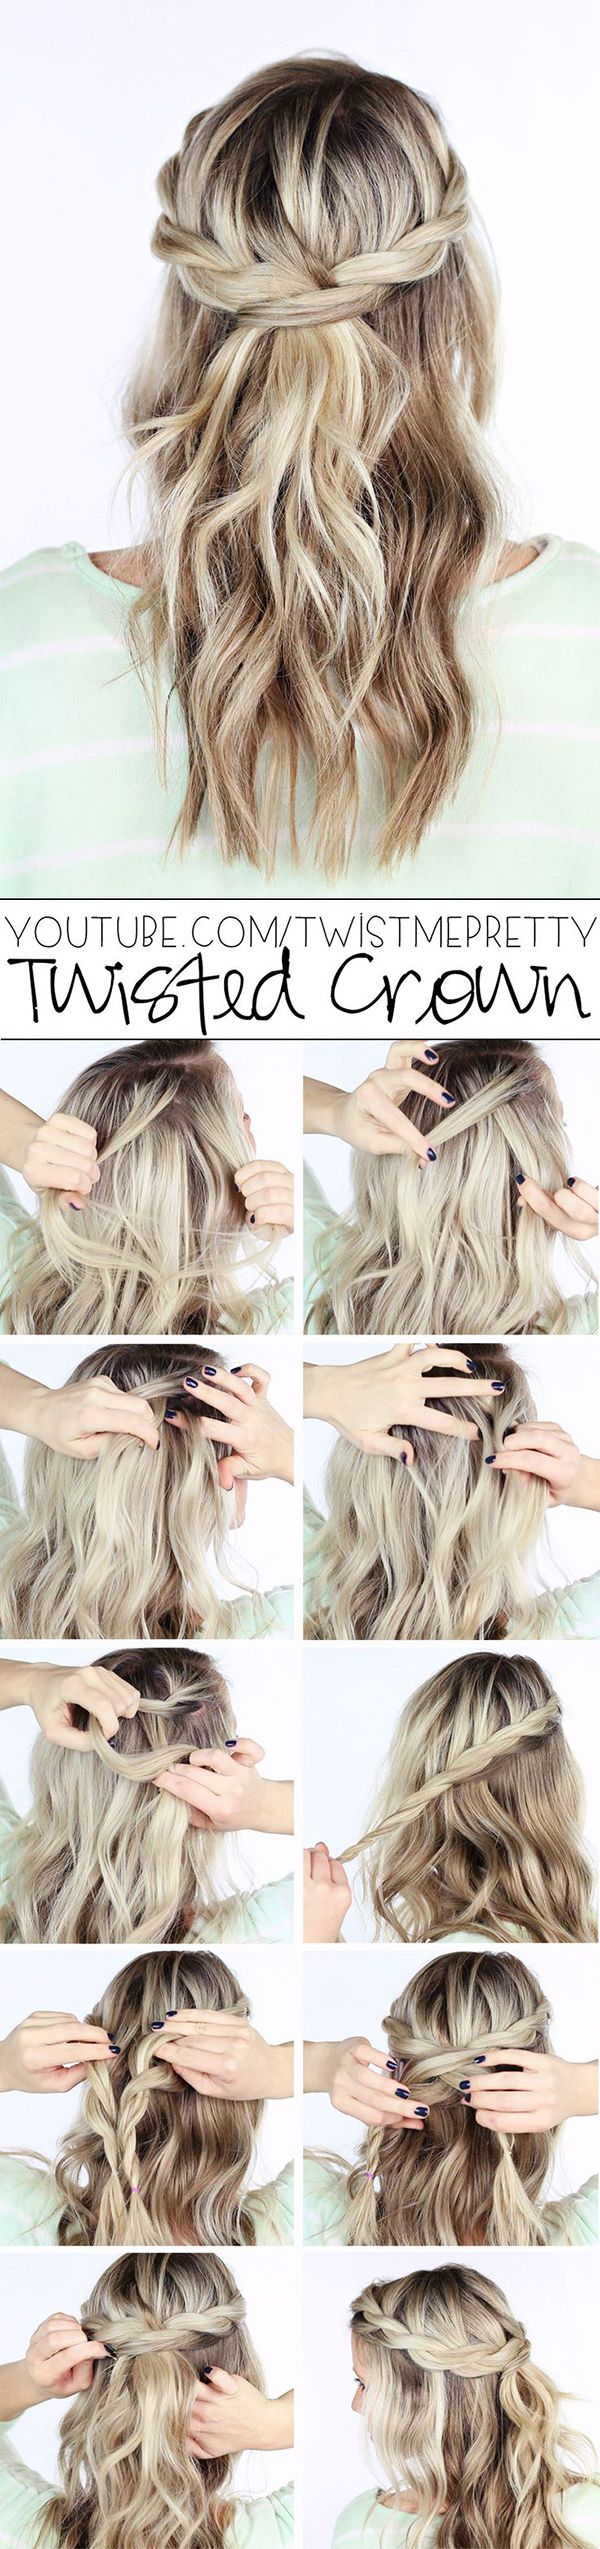 16 Boho Braid Tutorials That Will Give You Cinderella Hair For Prom